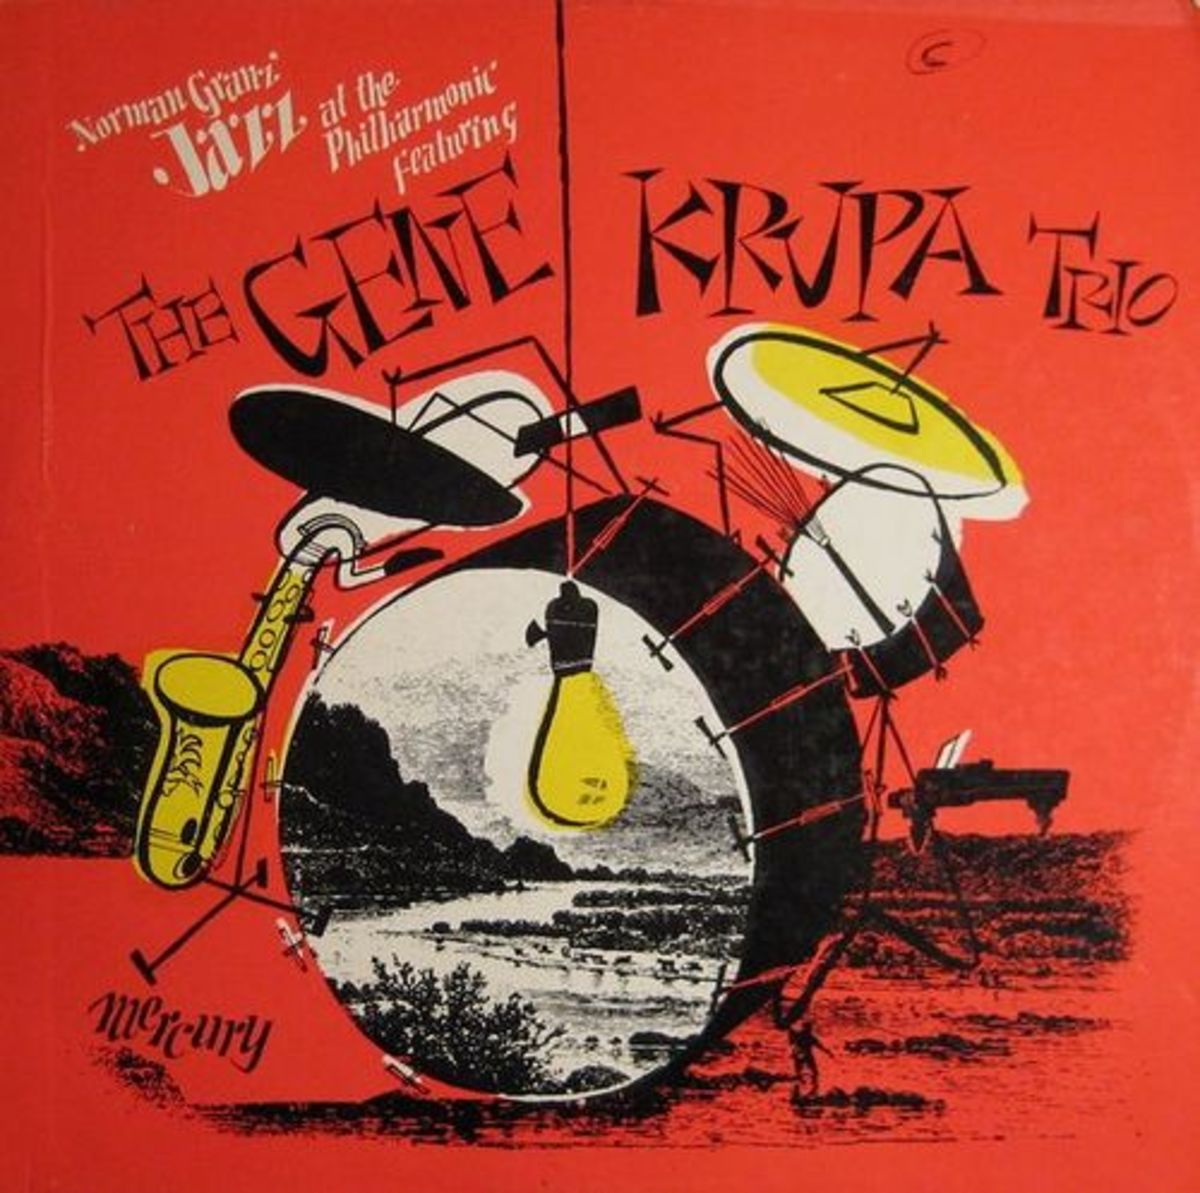 "The Gene Krupa Trio ""Jazz at the Philharmonic"" Mercury Records MG C-500 12"" LP Vinyl Record"